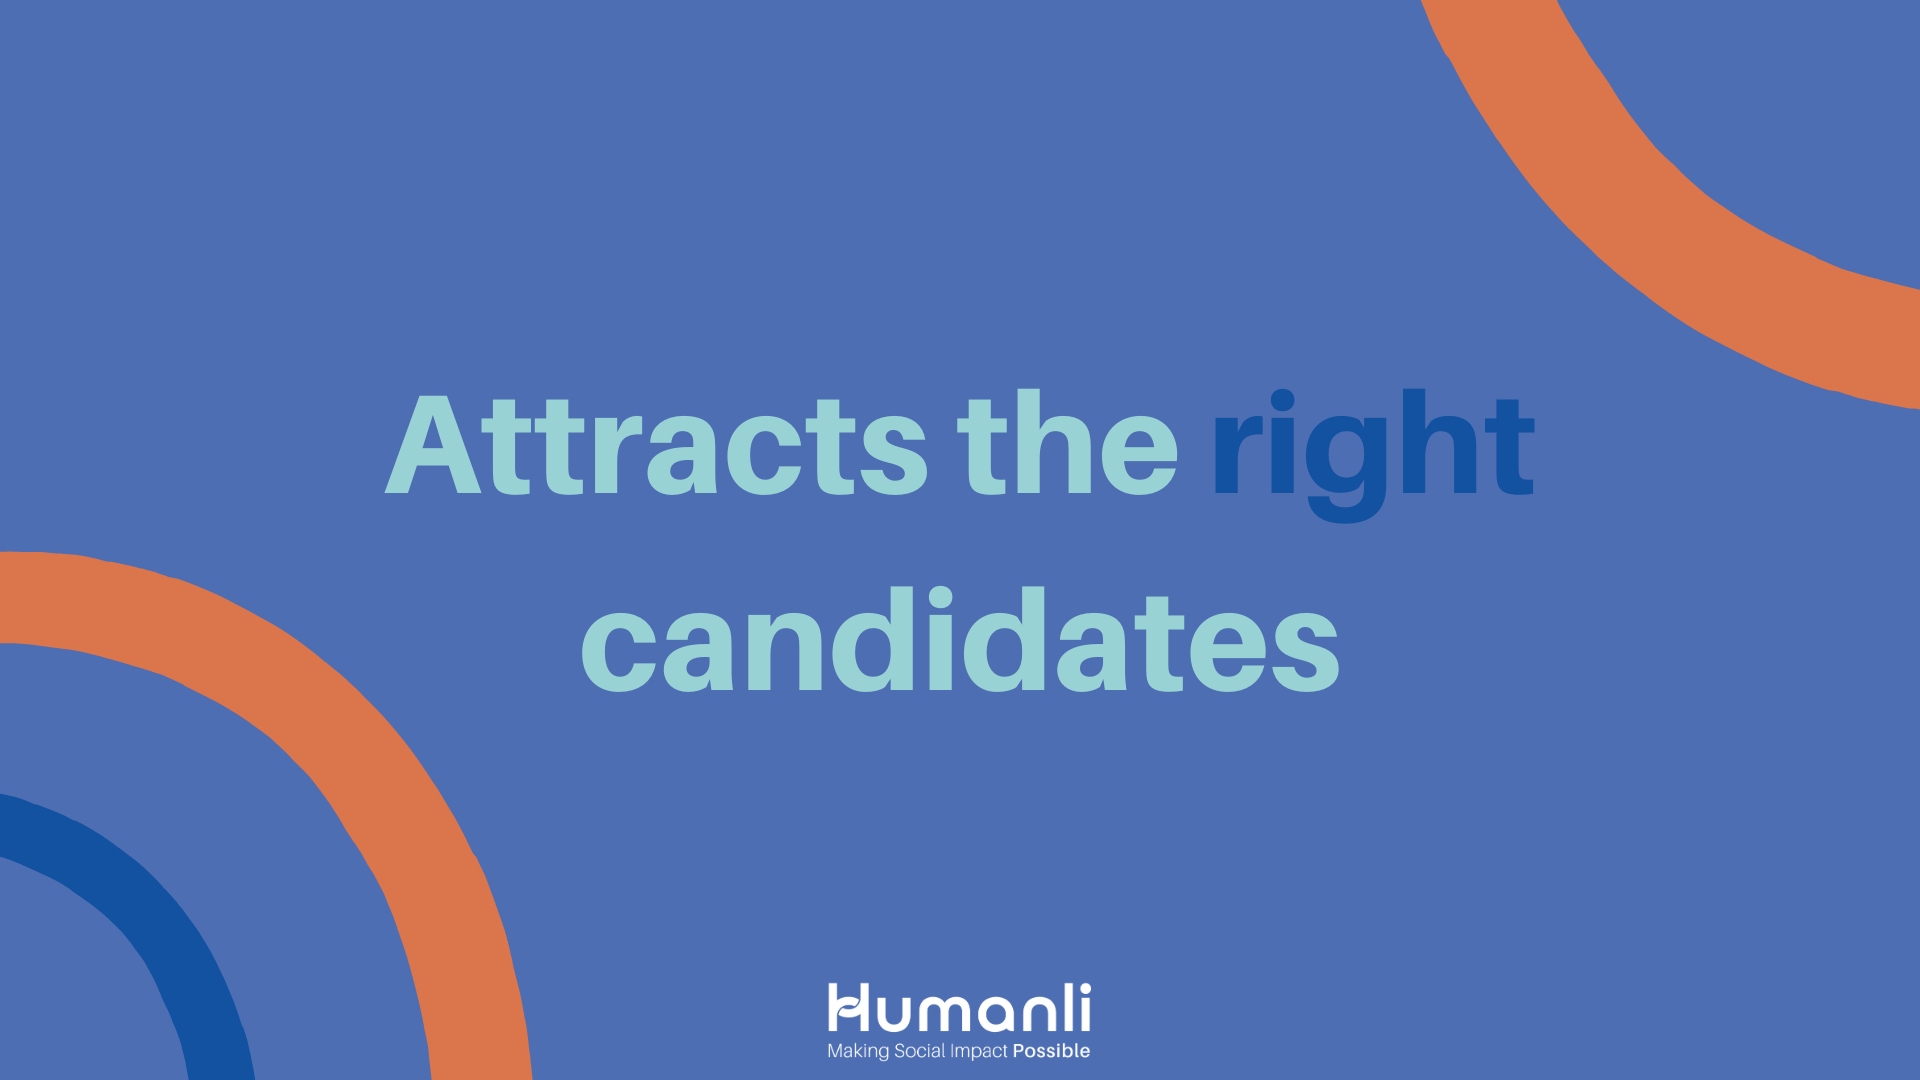 Attracts the right candidates